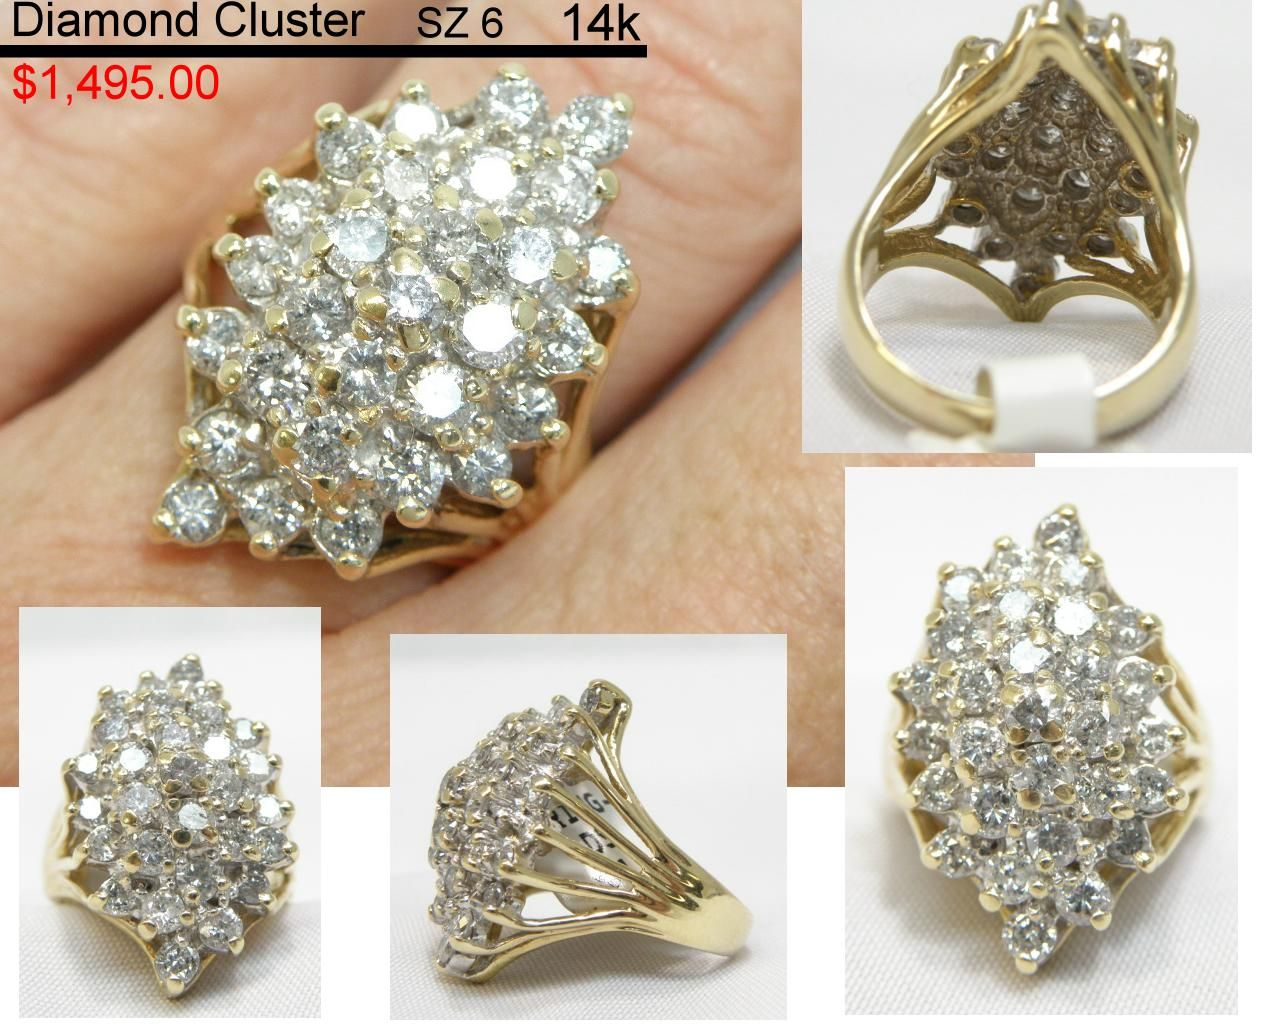 This beautiful 14k Diamond Cluster (sz6) would be a great Gift. Stop on in to Stop and Pawn and get this beuaty before its gone.